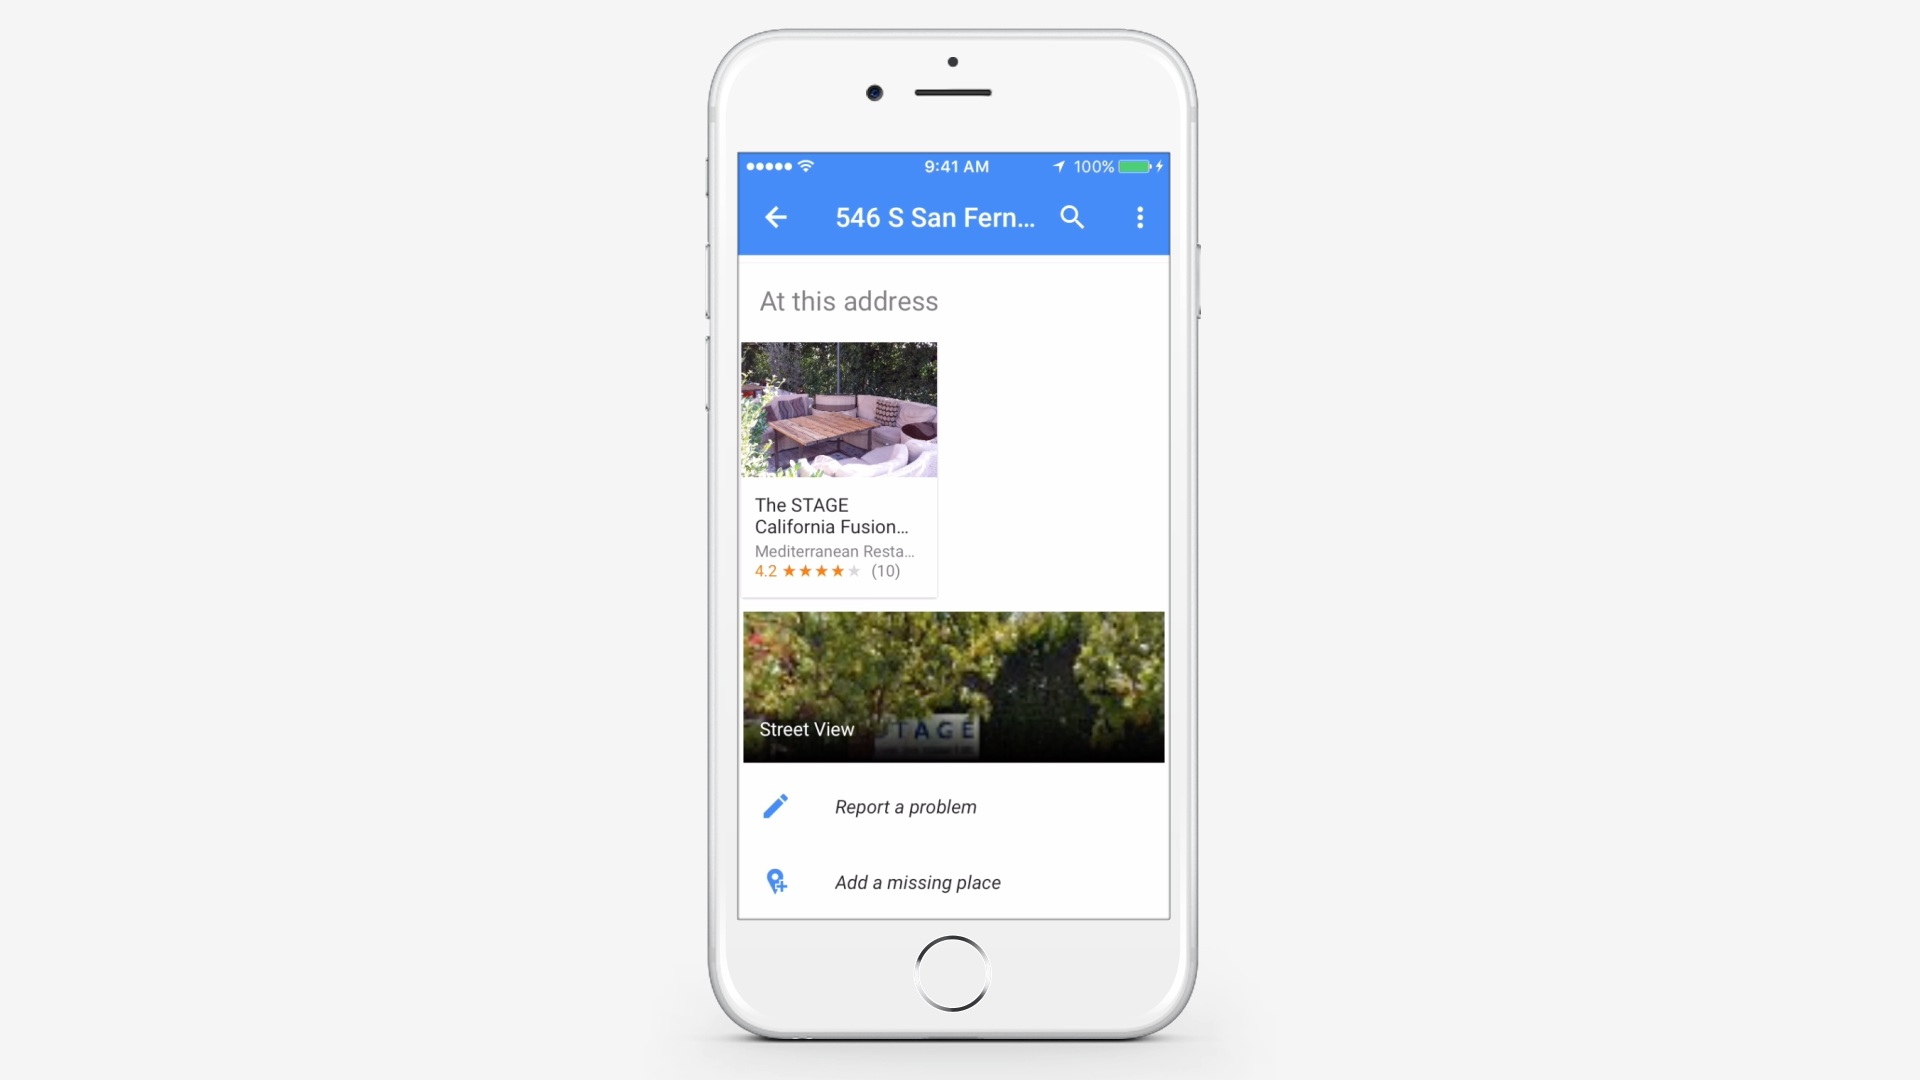 Start the Google Maps Application